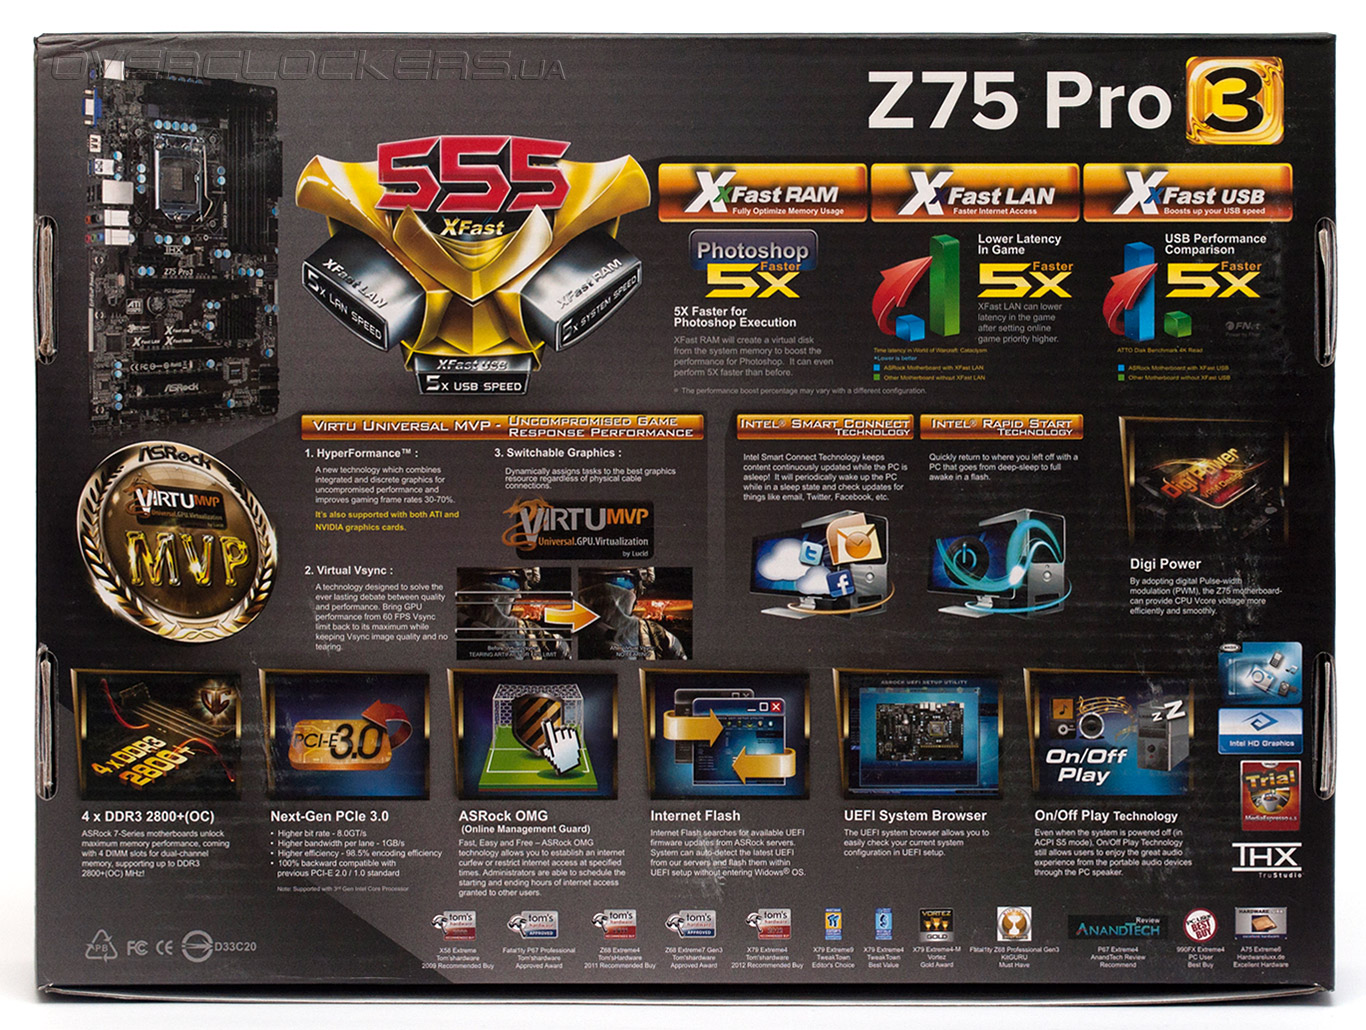 Asrock Z75 Pro3 XFast USB Windows 8 X64 Treiber